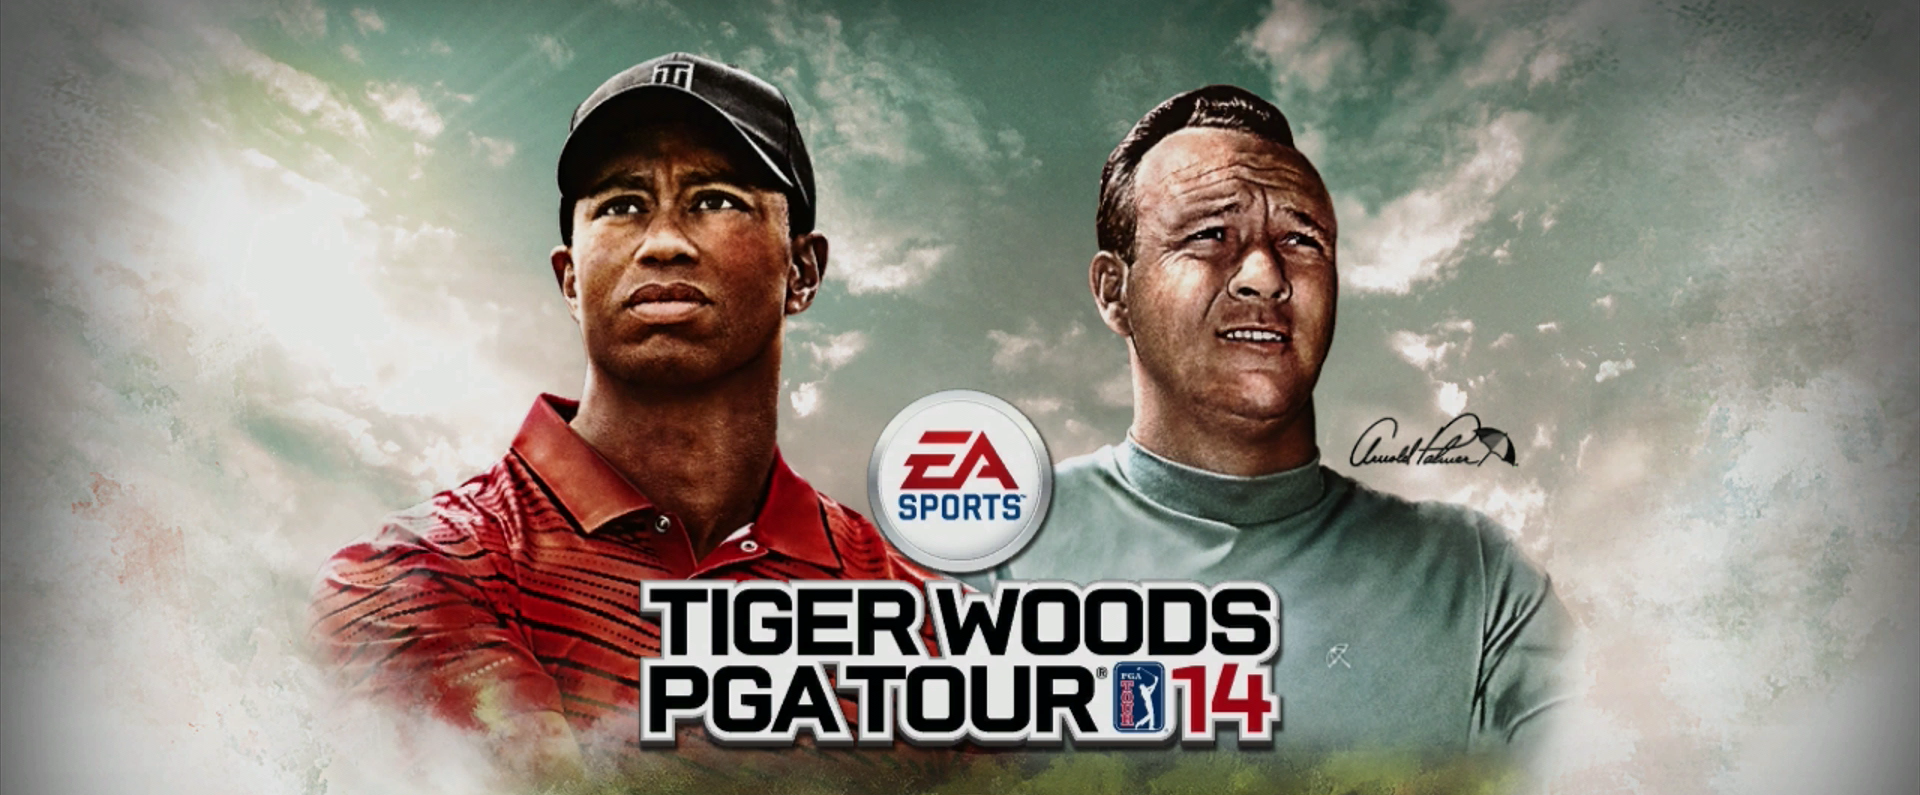 Tiger Woods PGA Tour 14 Start Screen